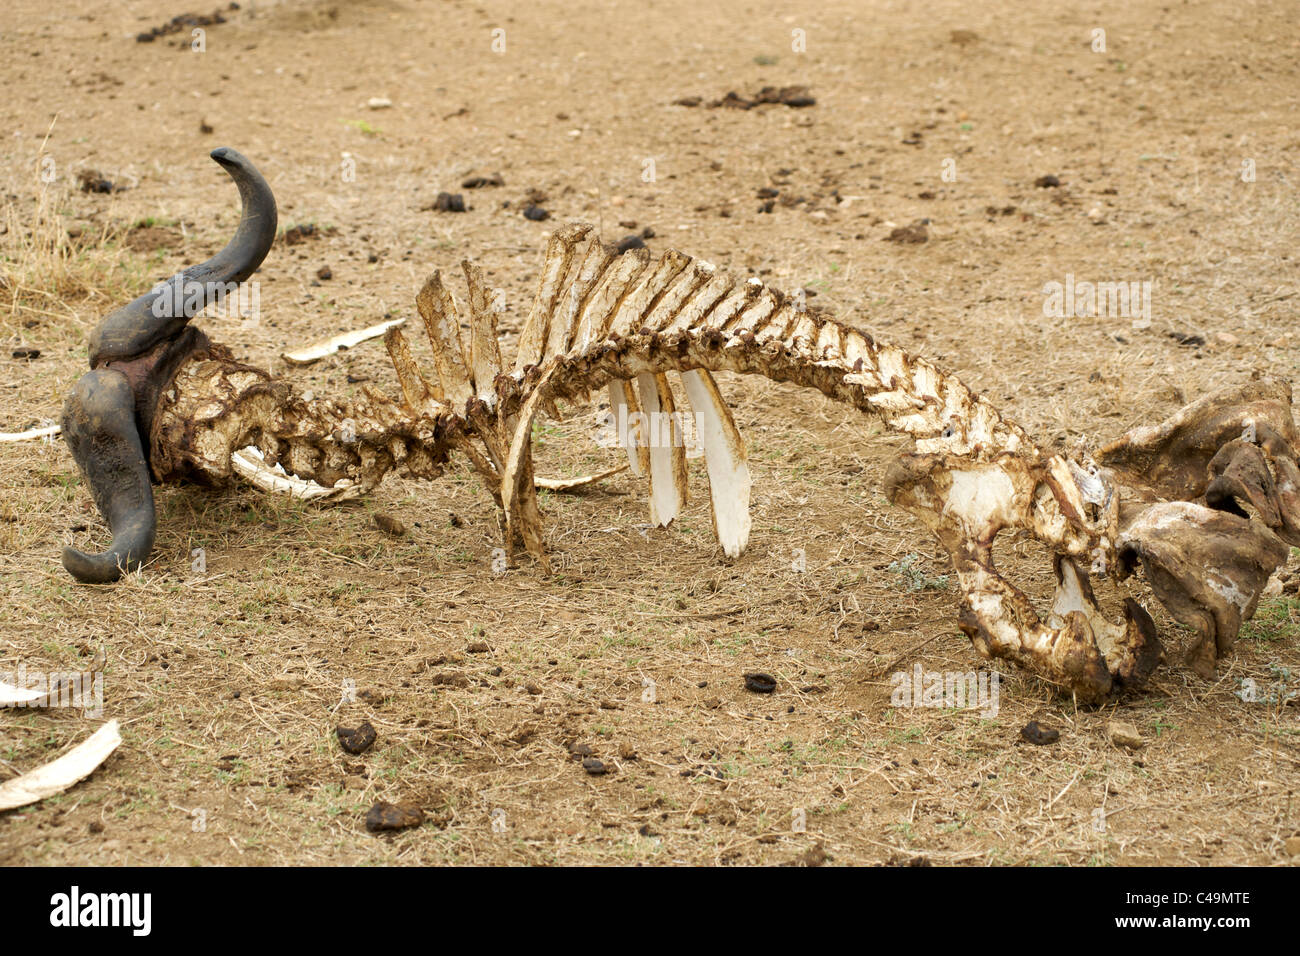 Buffalo carcass in the Kruger Park area of South Africa. - Stock Image